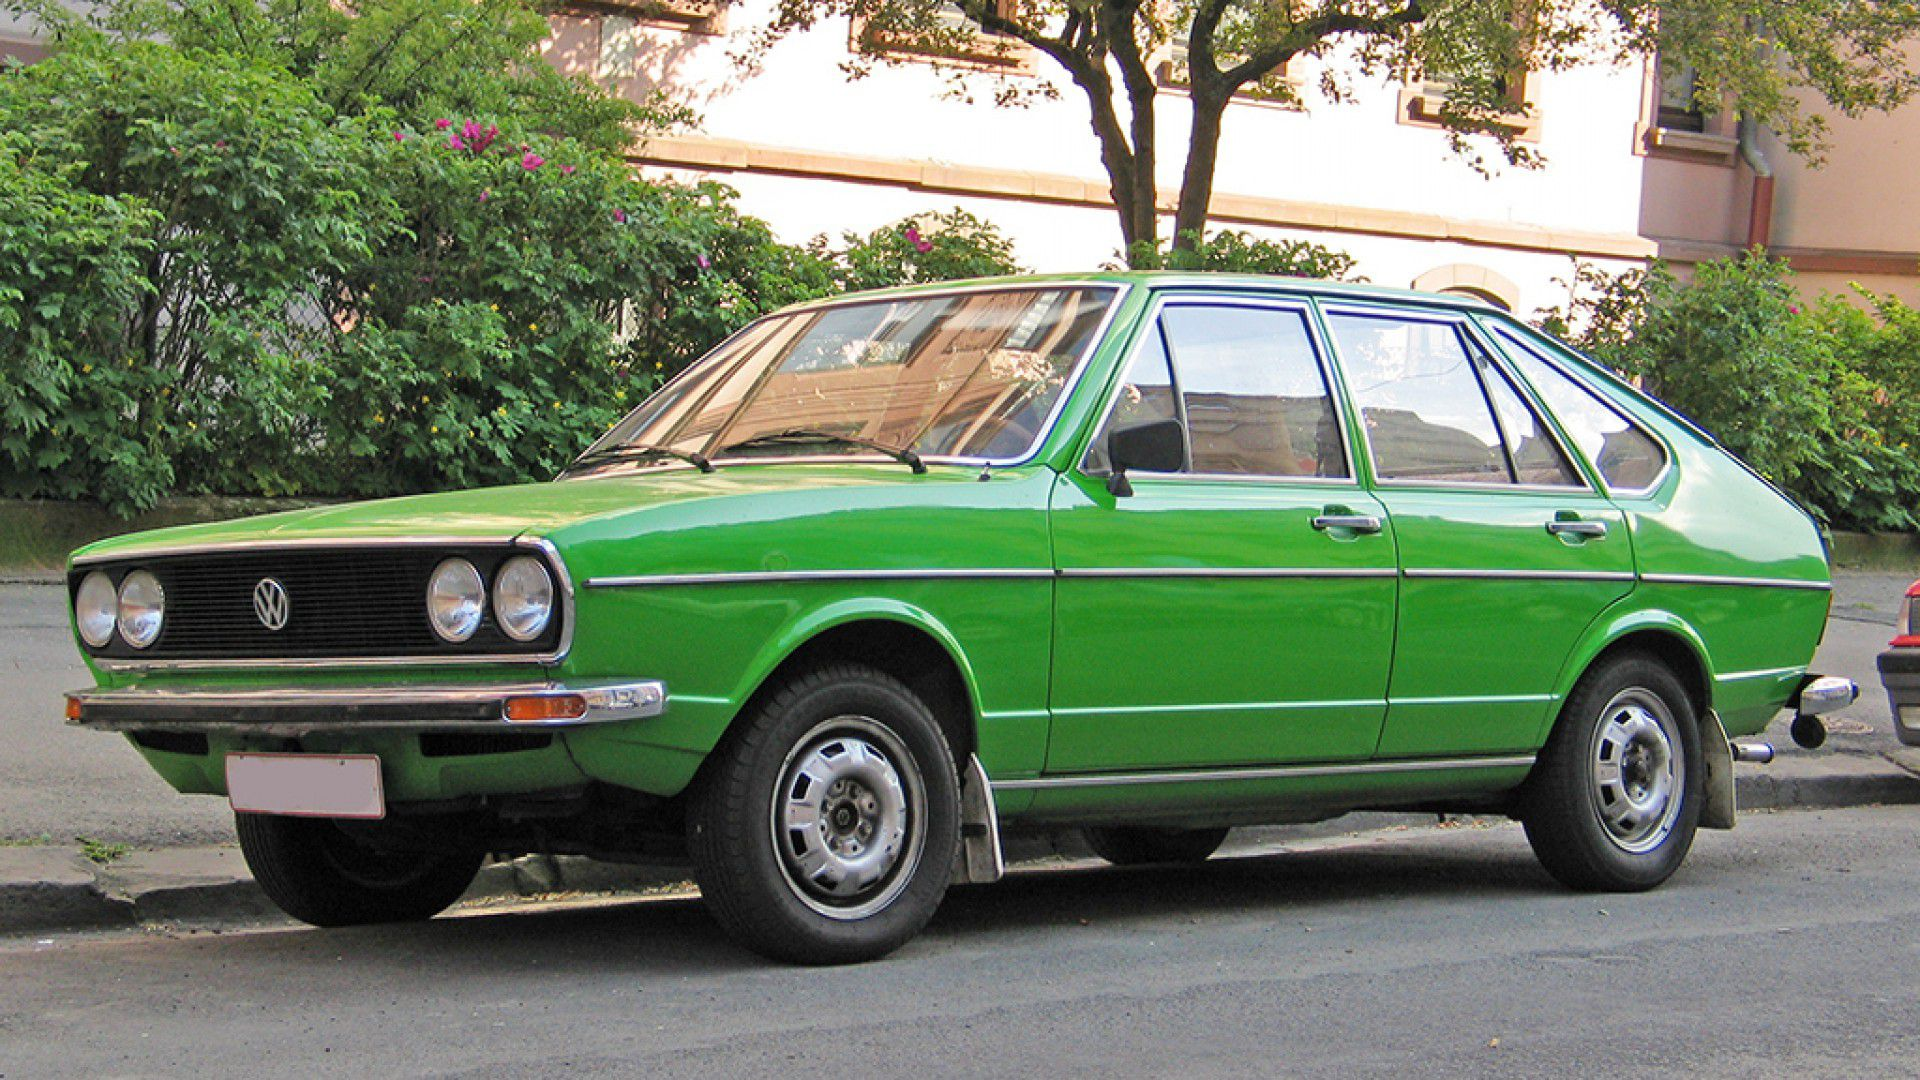 Audi 50 (1974 to 1978)